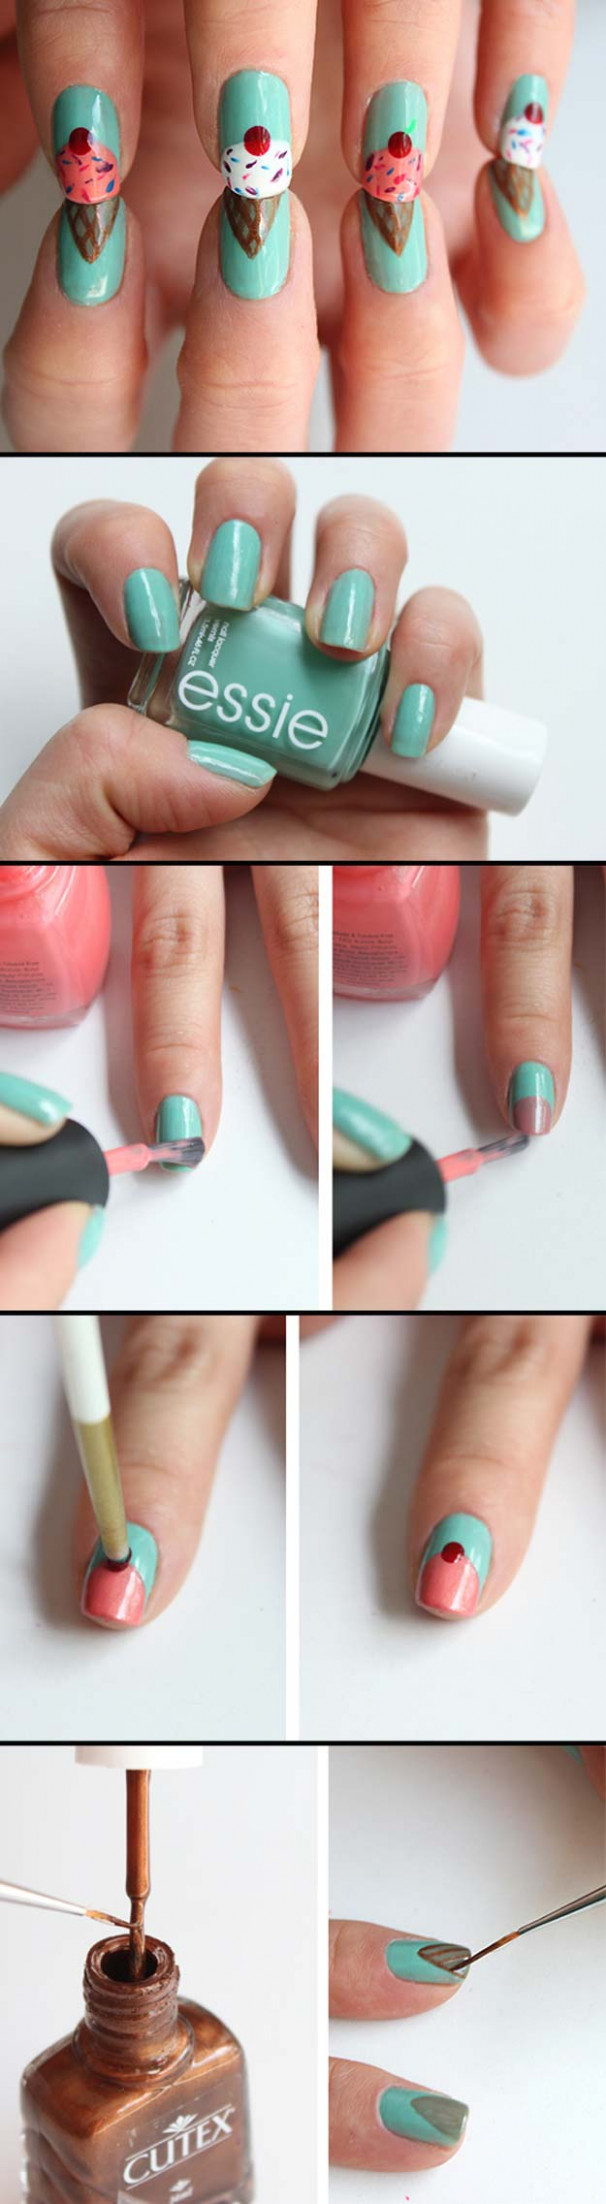 9 Cool Nail Art Designs for Teens - The Goddess